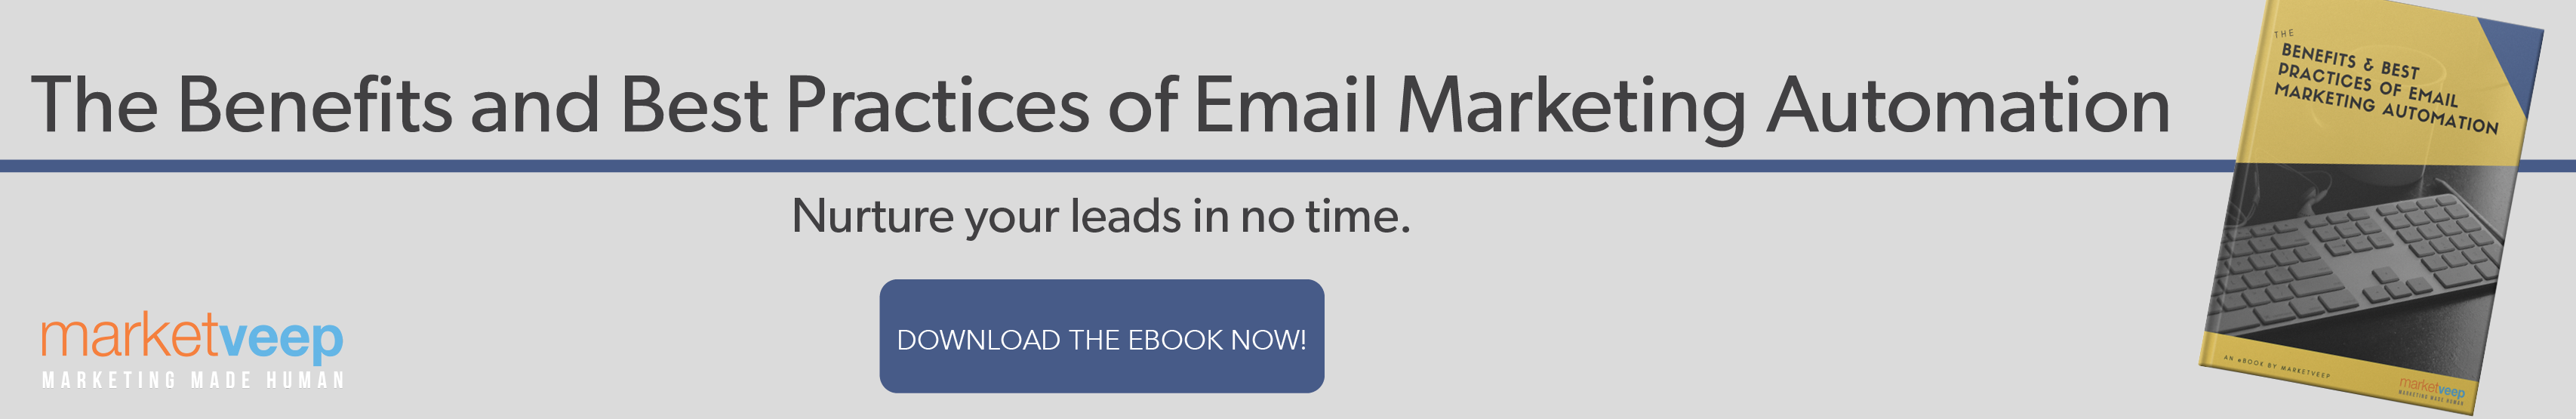 The Benefits and Best Practices of Email Marketing Automation